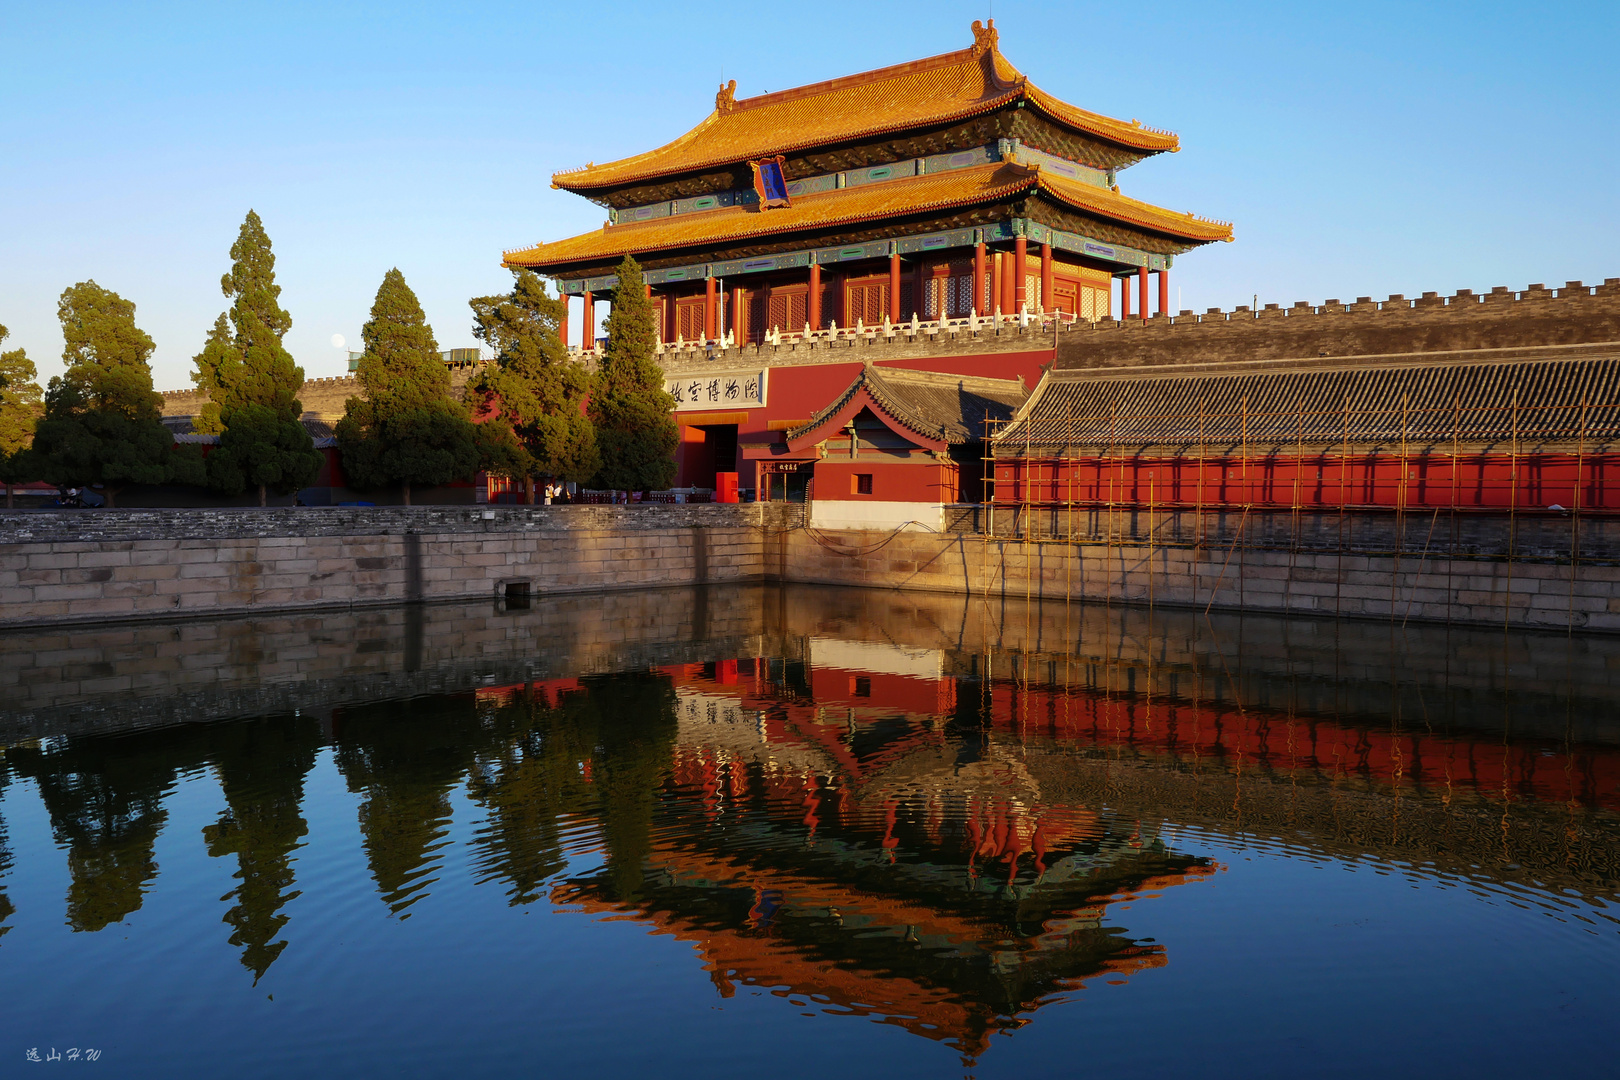 The north gate of the Forbidden City